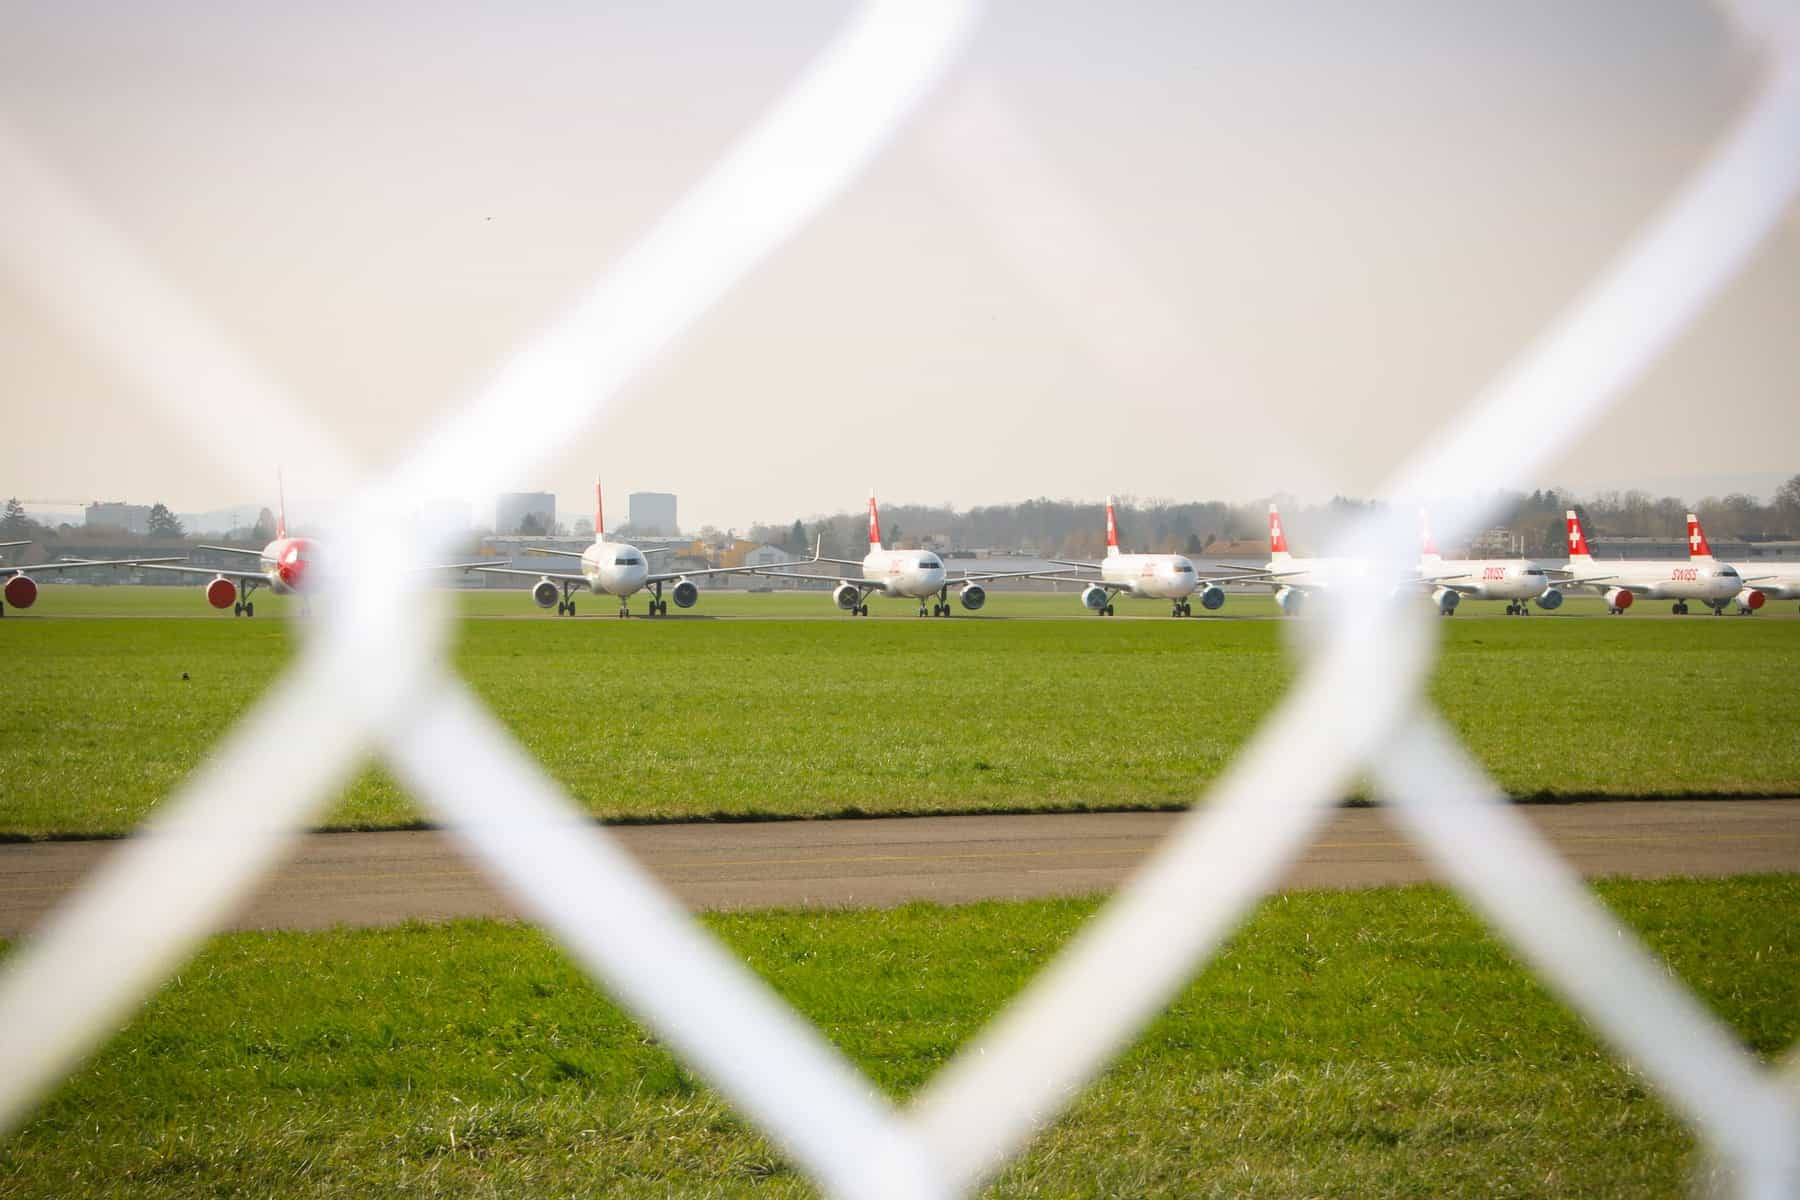 Commercial airline executives are facing a new frontier during the COVID-19 pandemic